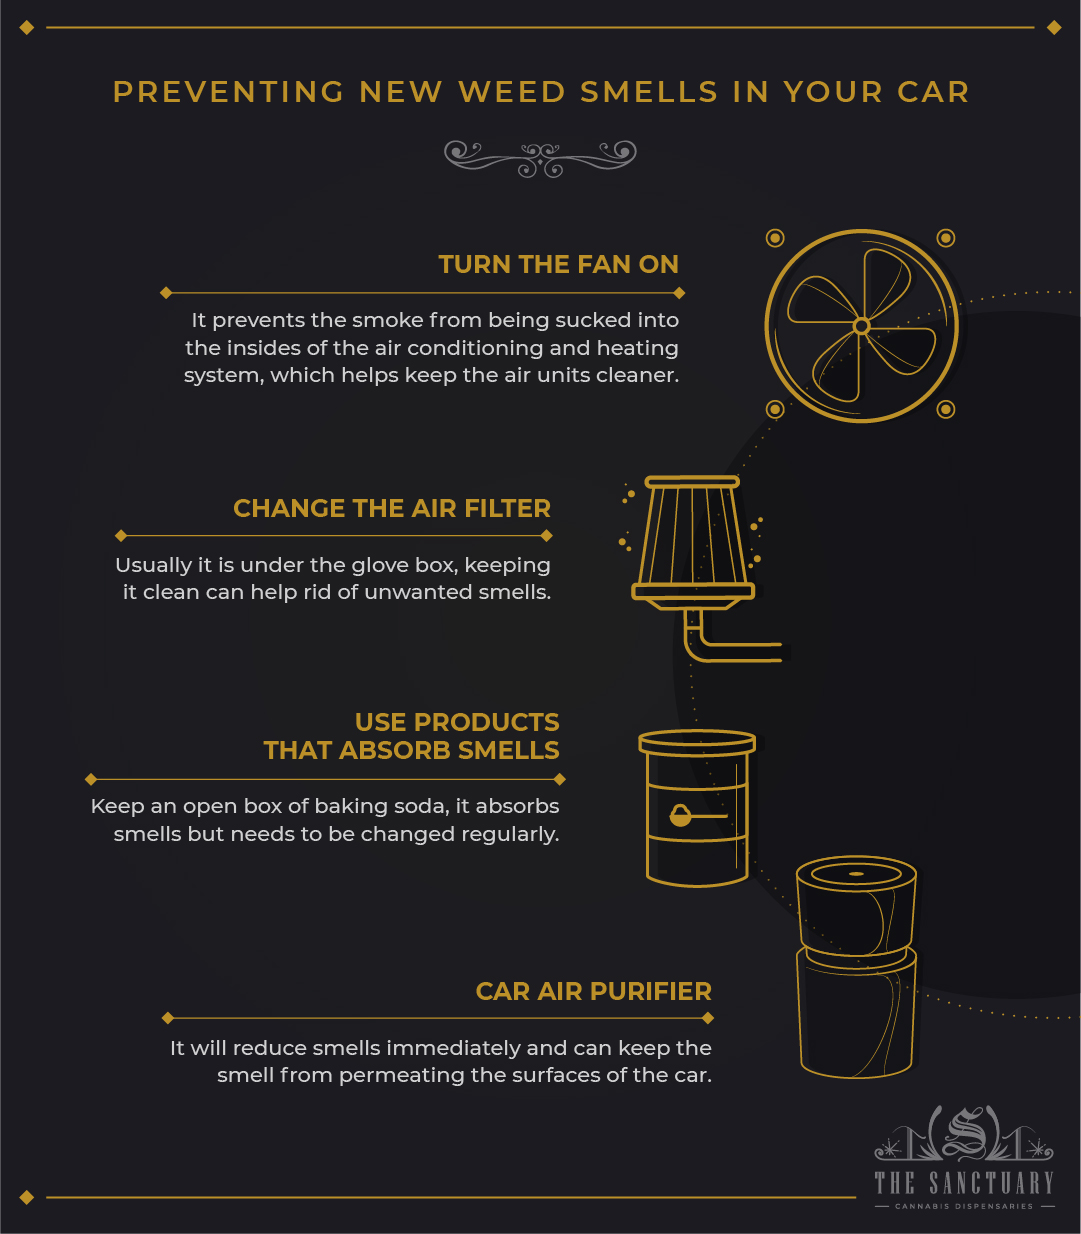 How to Get Weed Smell Out of Your Car?